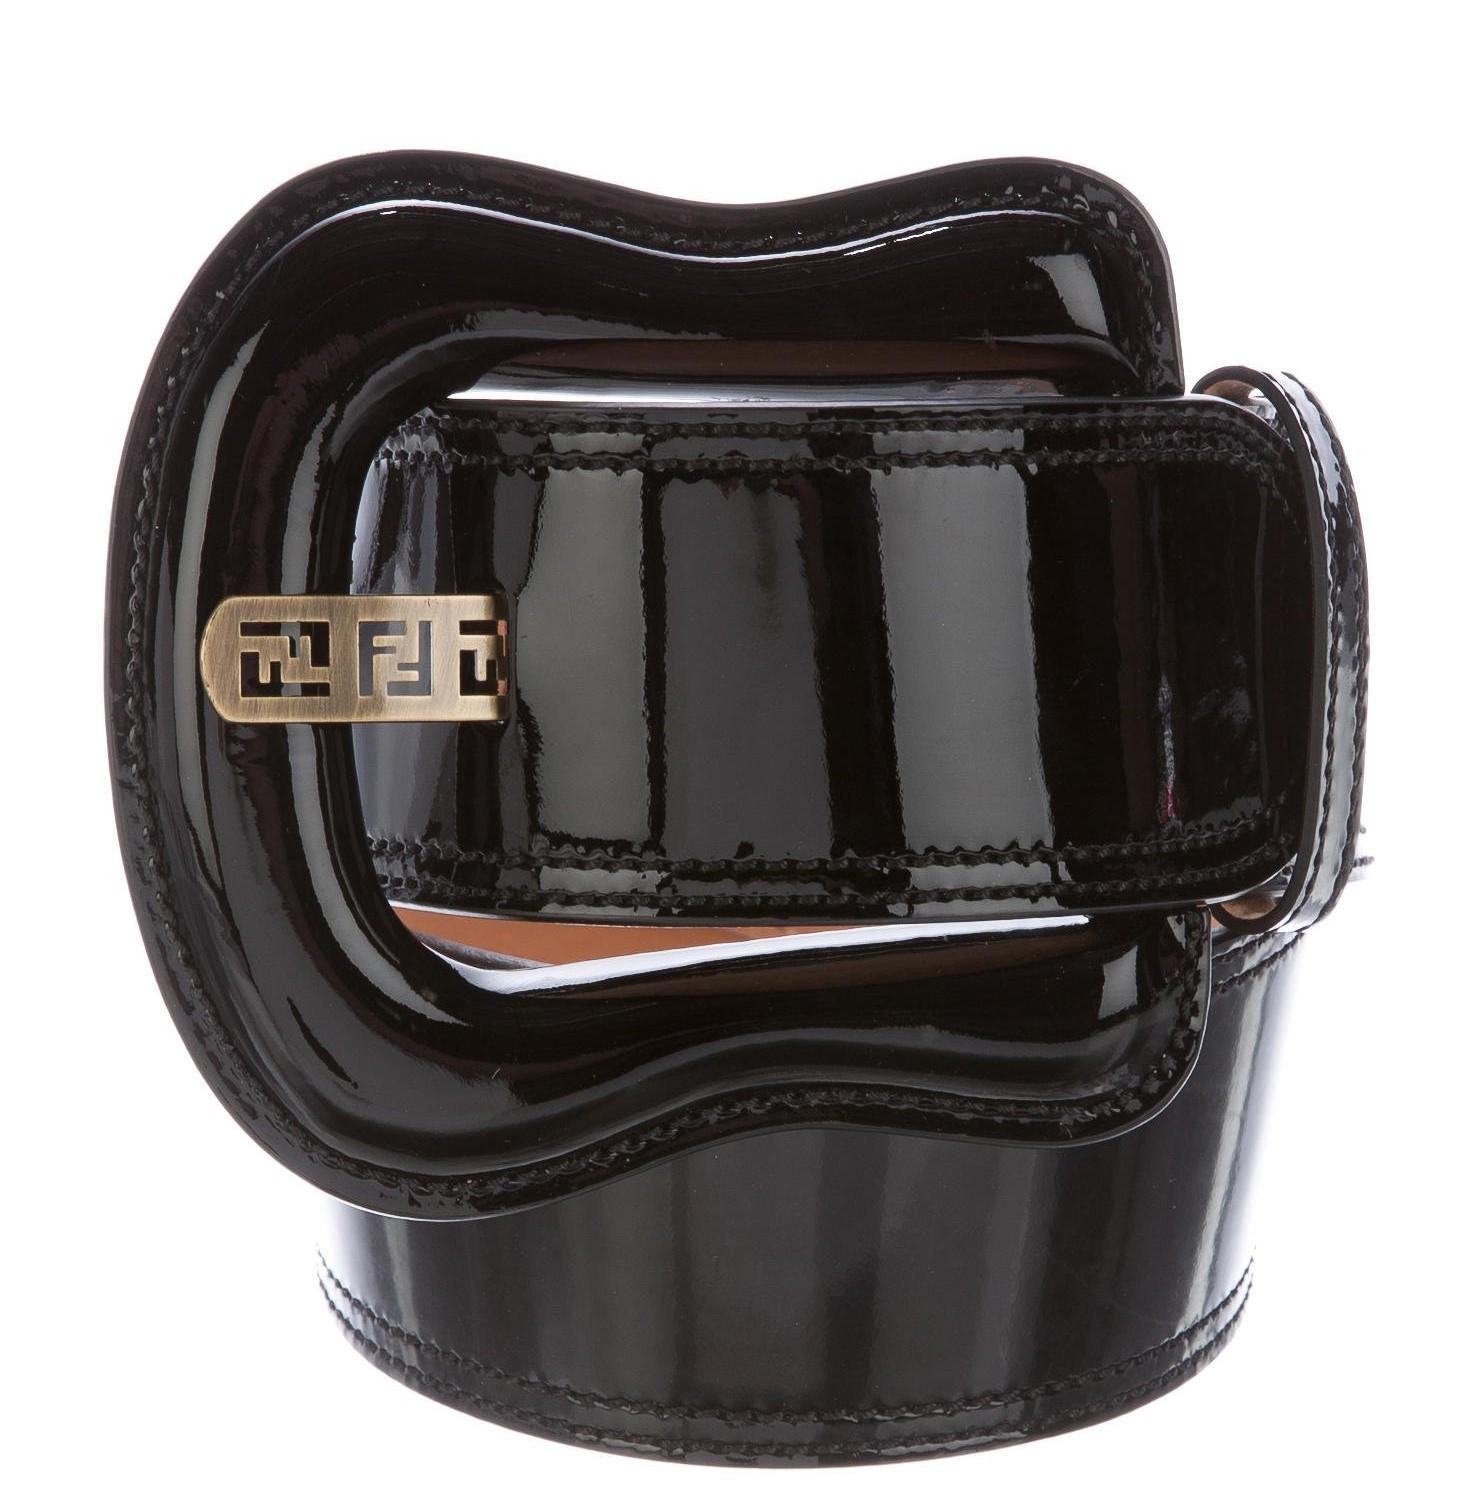 684237787deb ... sweden fendi black patent leather fendi zucca logo buckle waist belt xl  a21a1 38dab